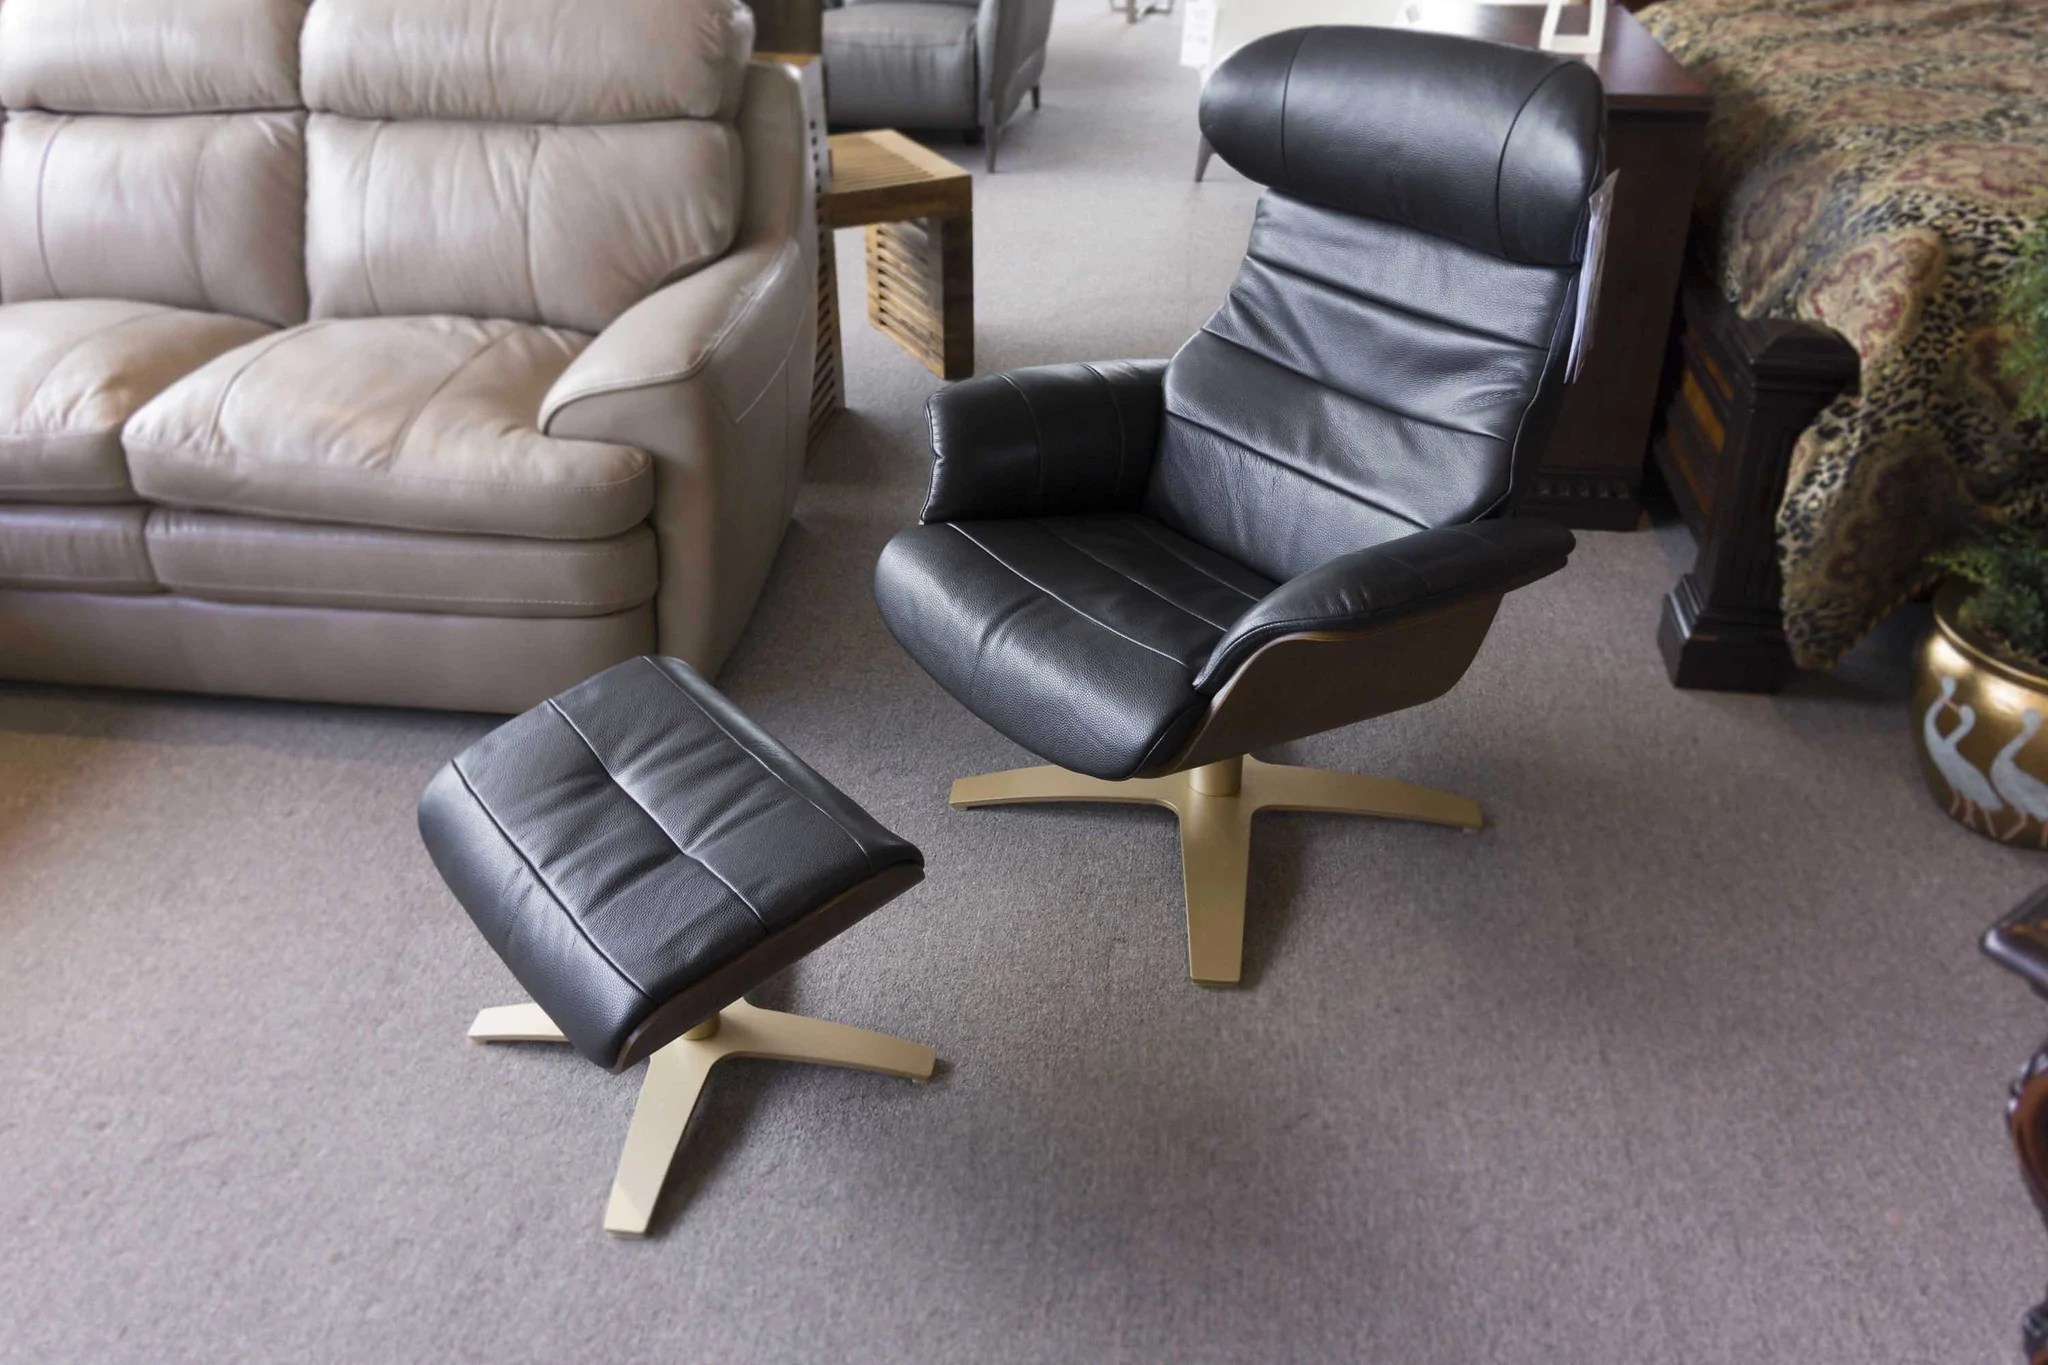 Leather Chair And Ottoman A928 Leather Chair Ottoman 1399 Gallery Furniture Of